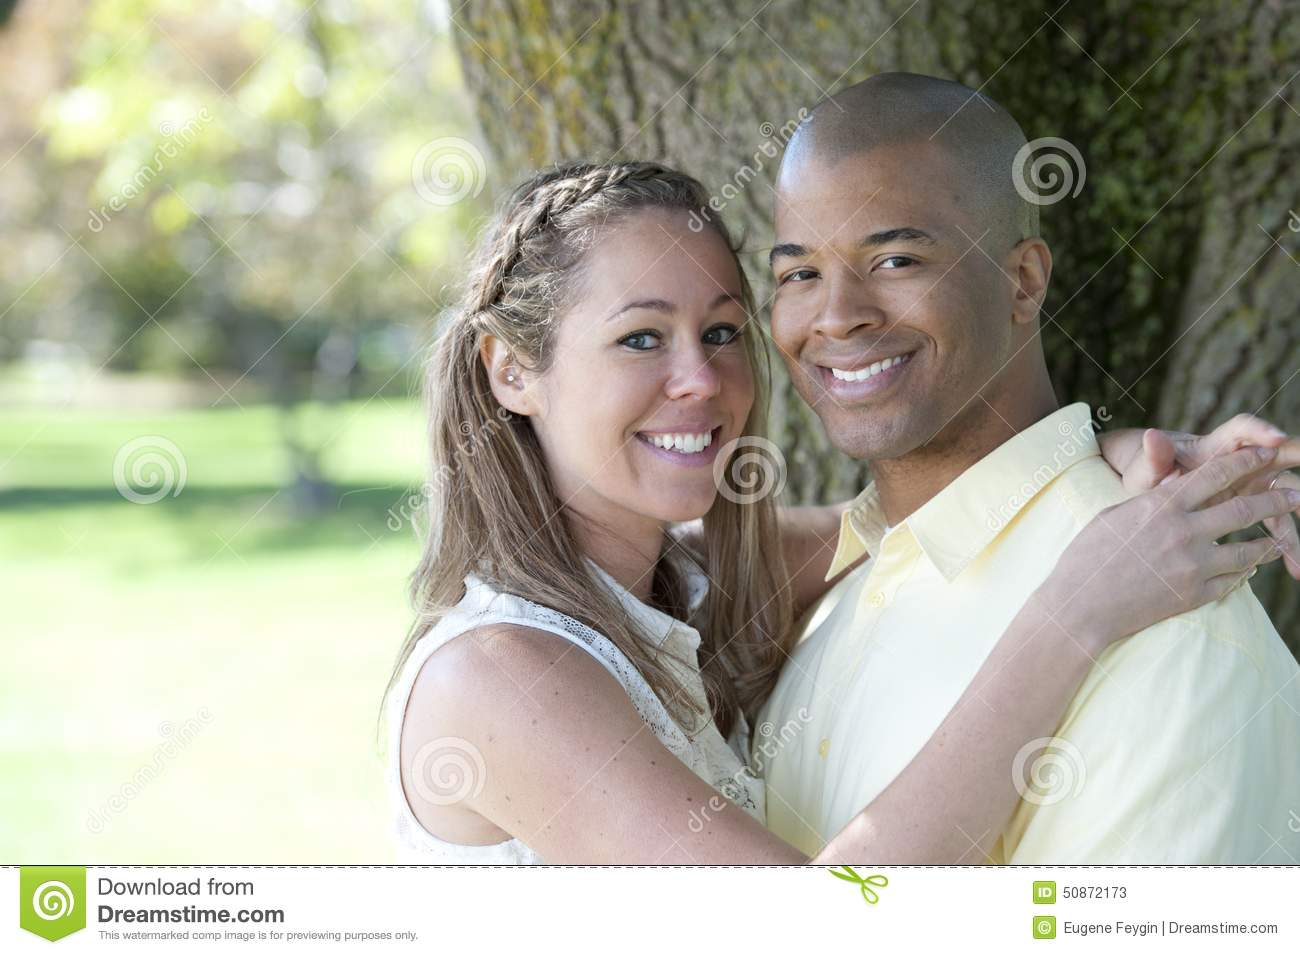 Interacial Top interacial couple stock image. image of face, love, happy - 50872173